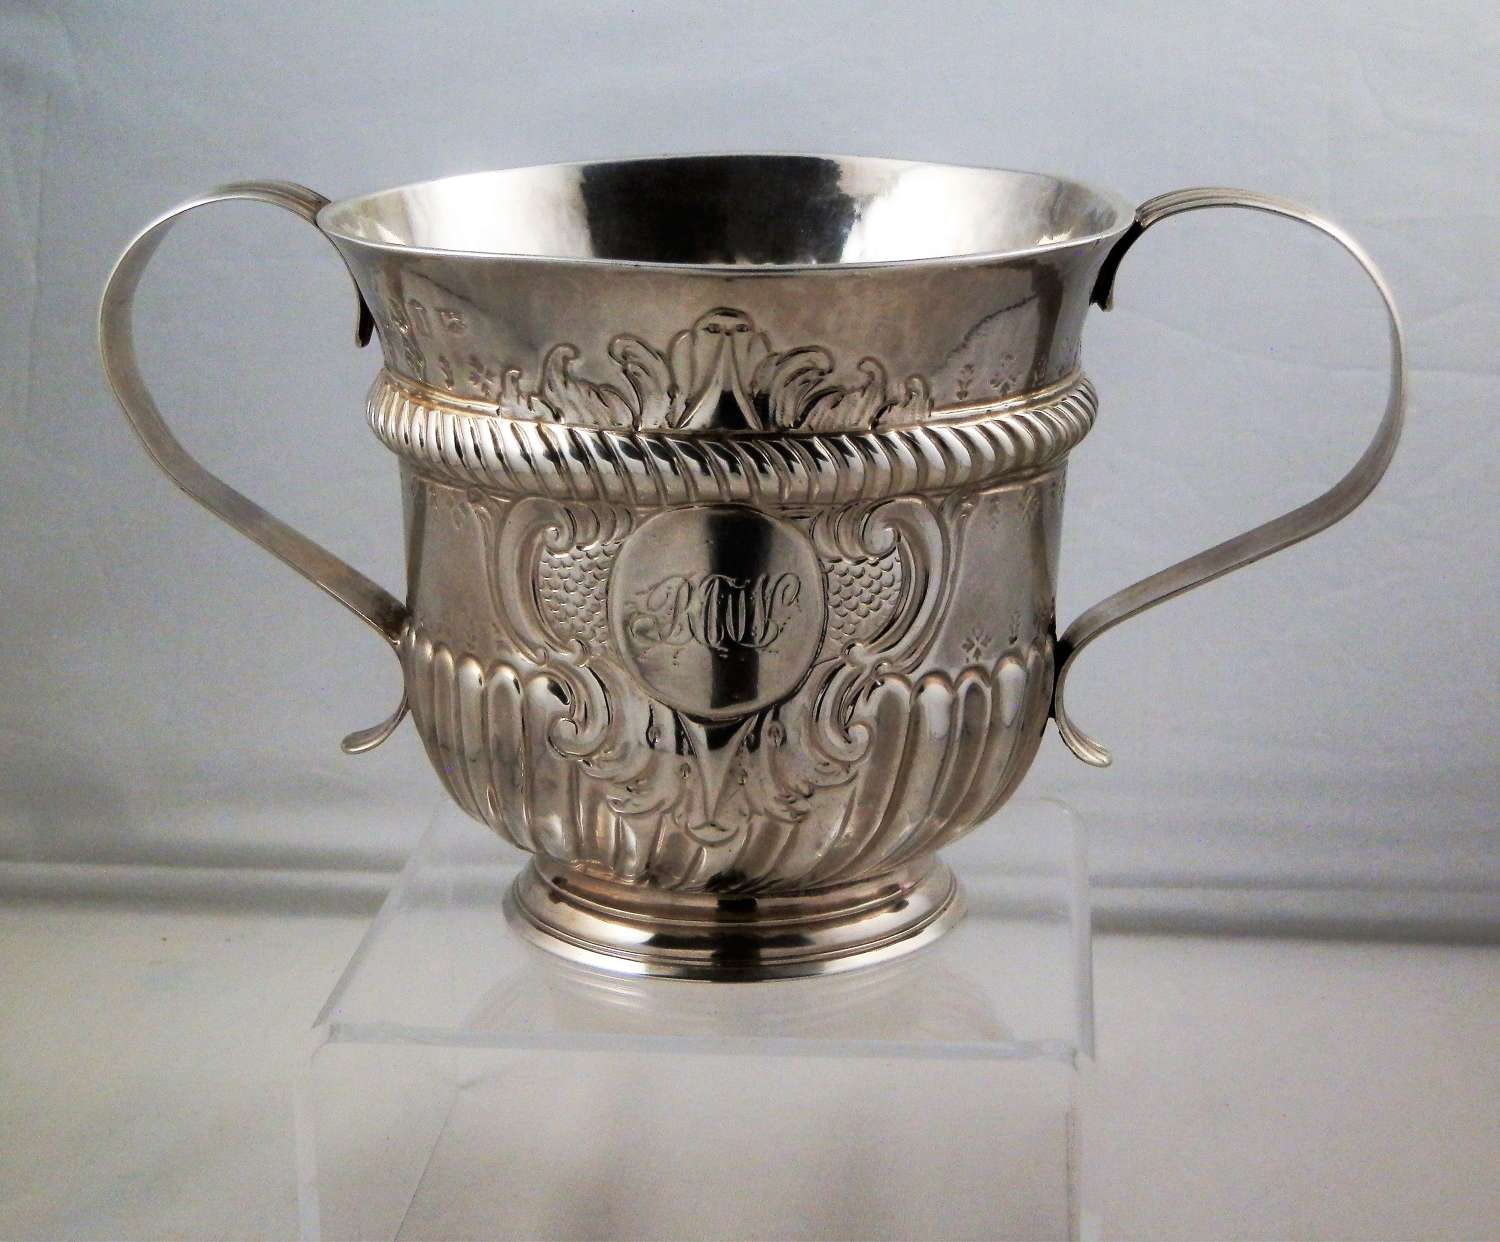 George II silver porringer, Richard Bayley 1746